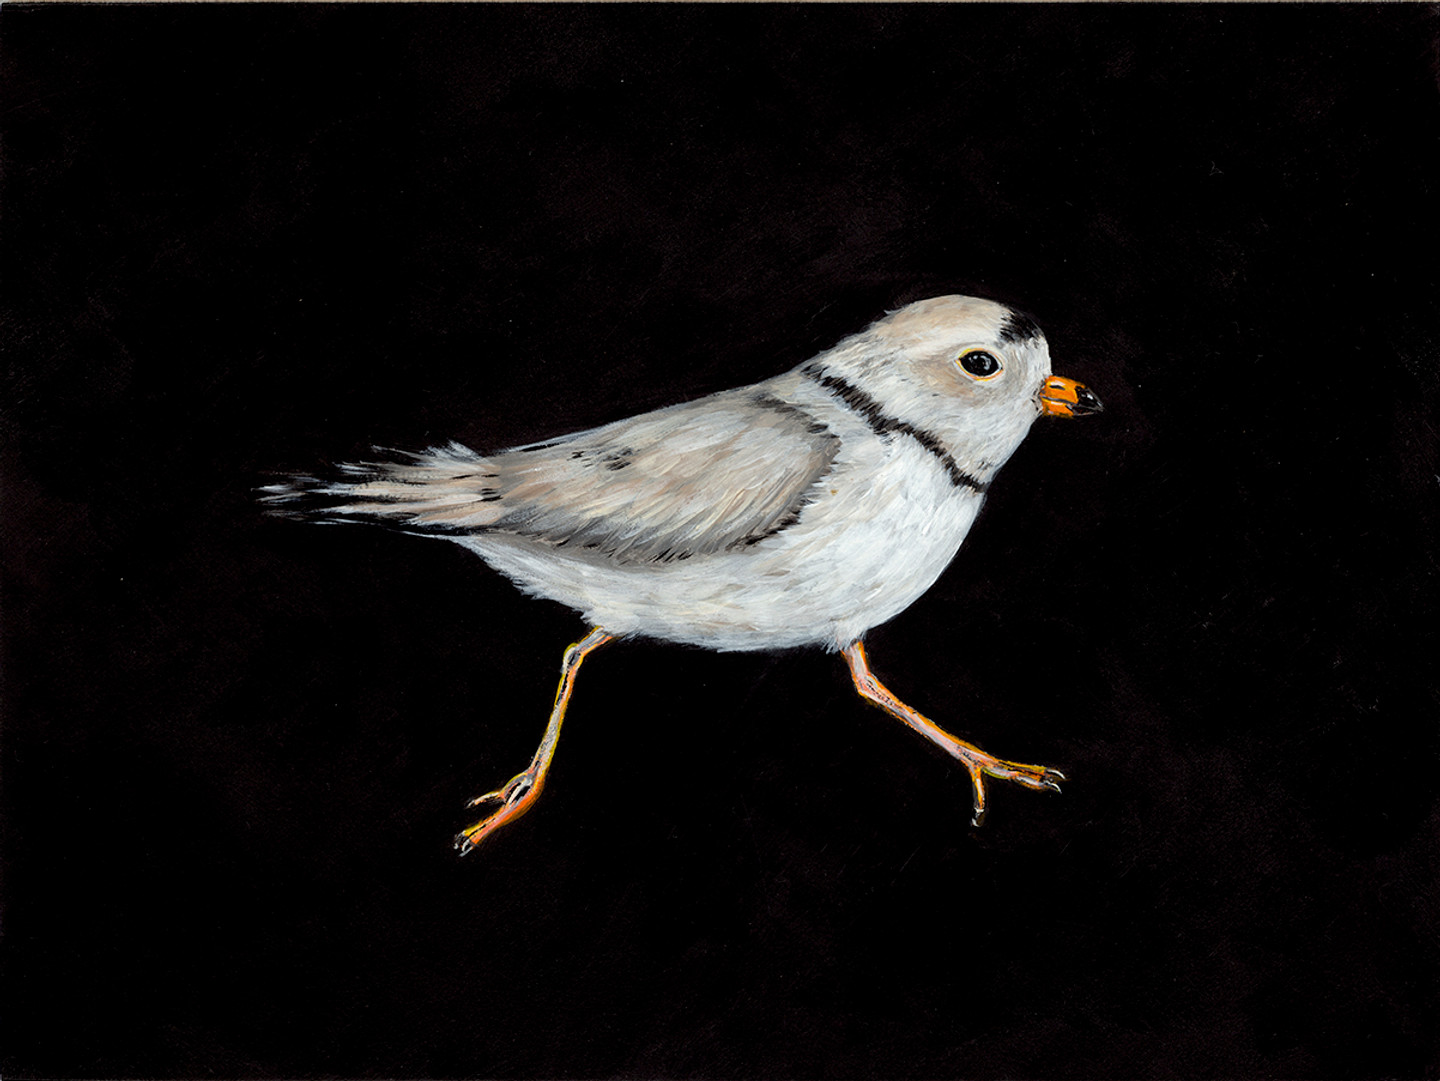 Piping Plover (Charadrius melodus - Threatened)